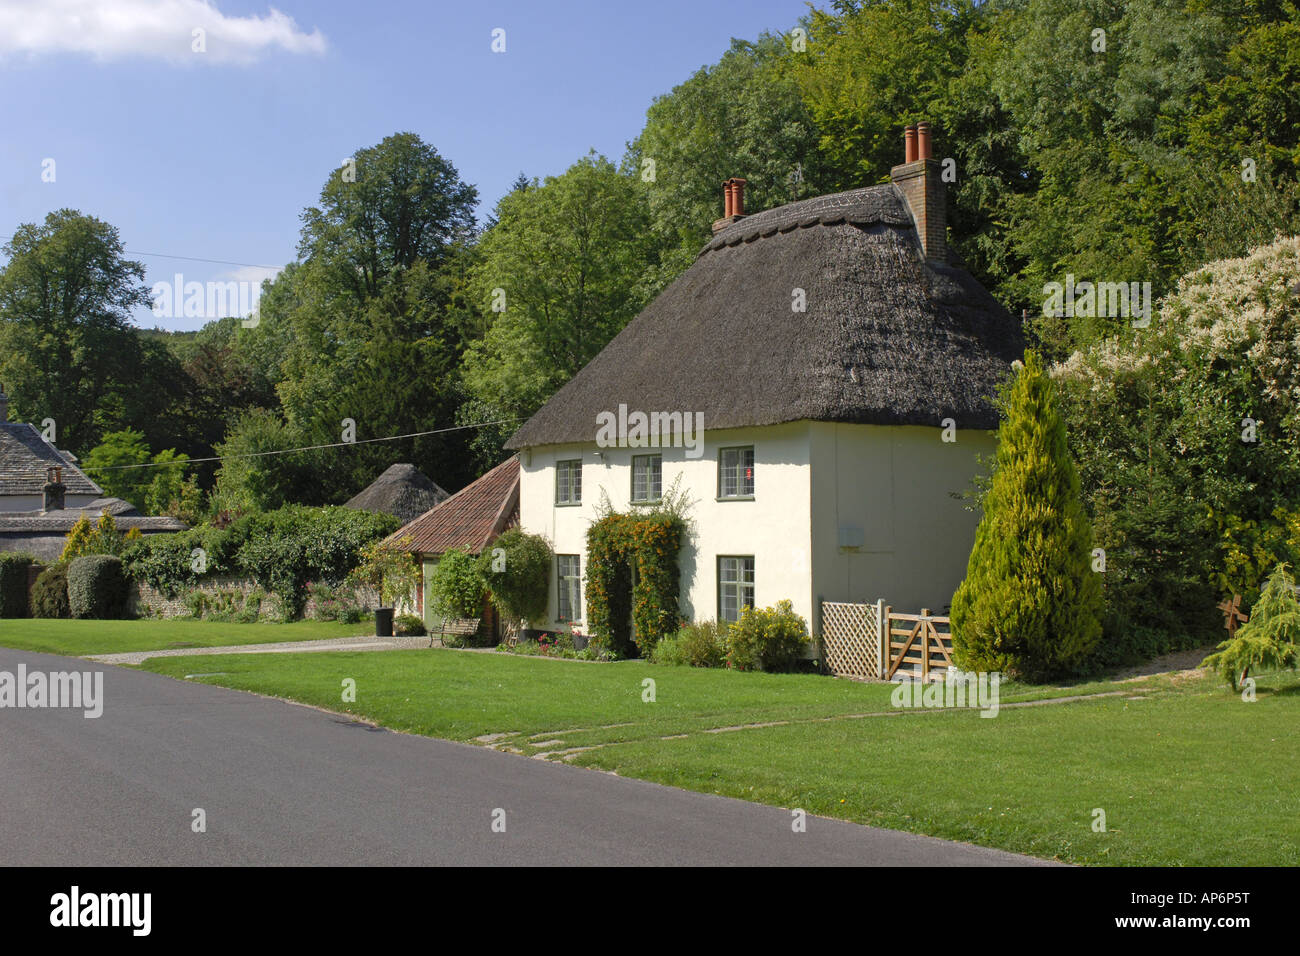 the picturesque thatched roof cottage in milton abbas dorset built in stockfoto lizenzfreies. Black Bedroom Furniture Sets. Home Design Ideas